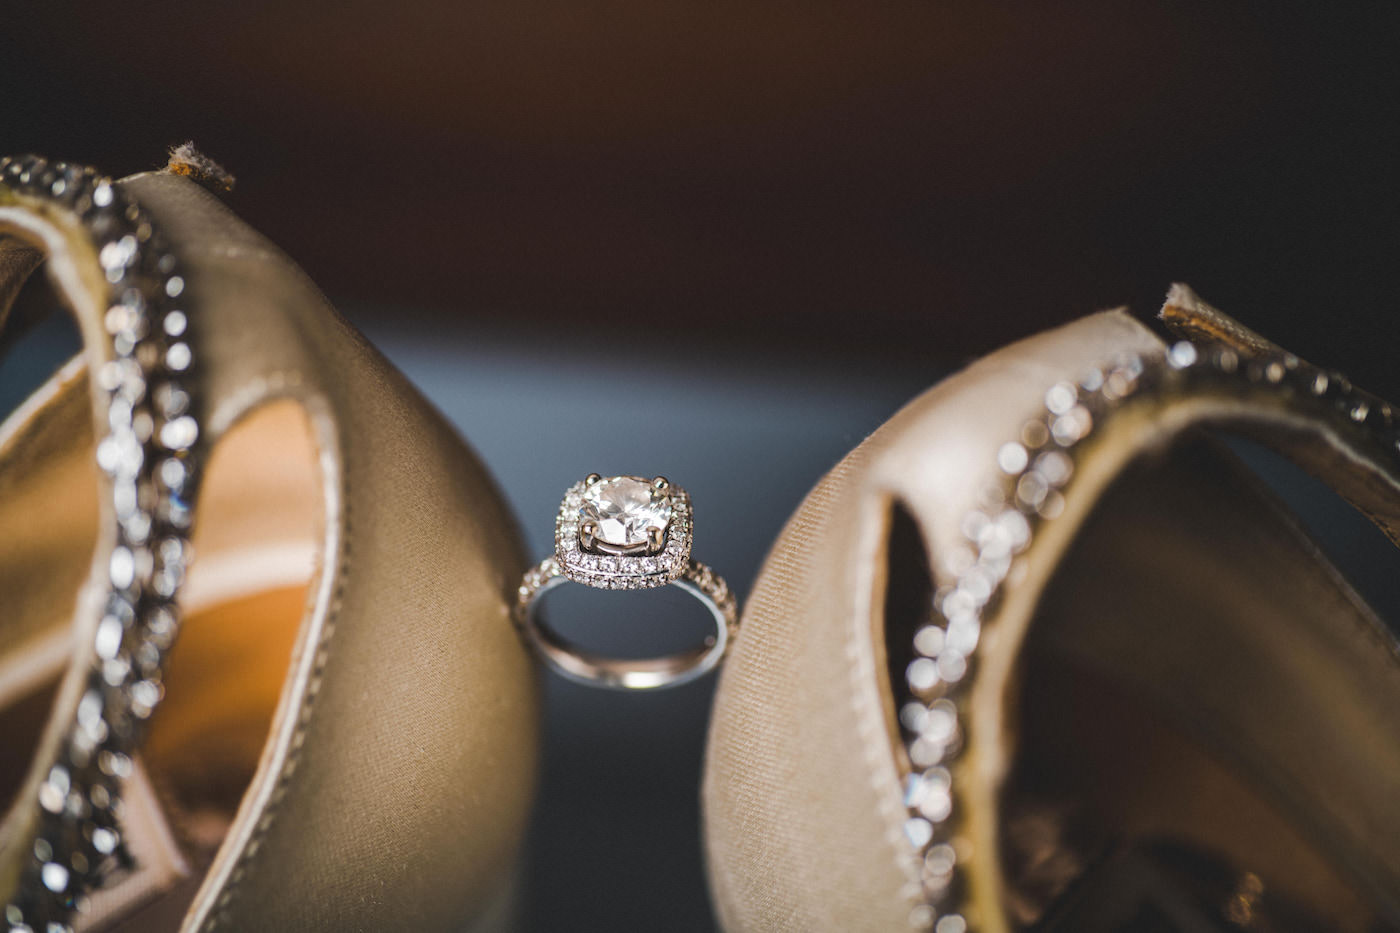 Engagement Ring With Diamond Band and Halo with Round Solitaire Diamond | Wedding Engagement Ring Shot